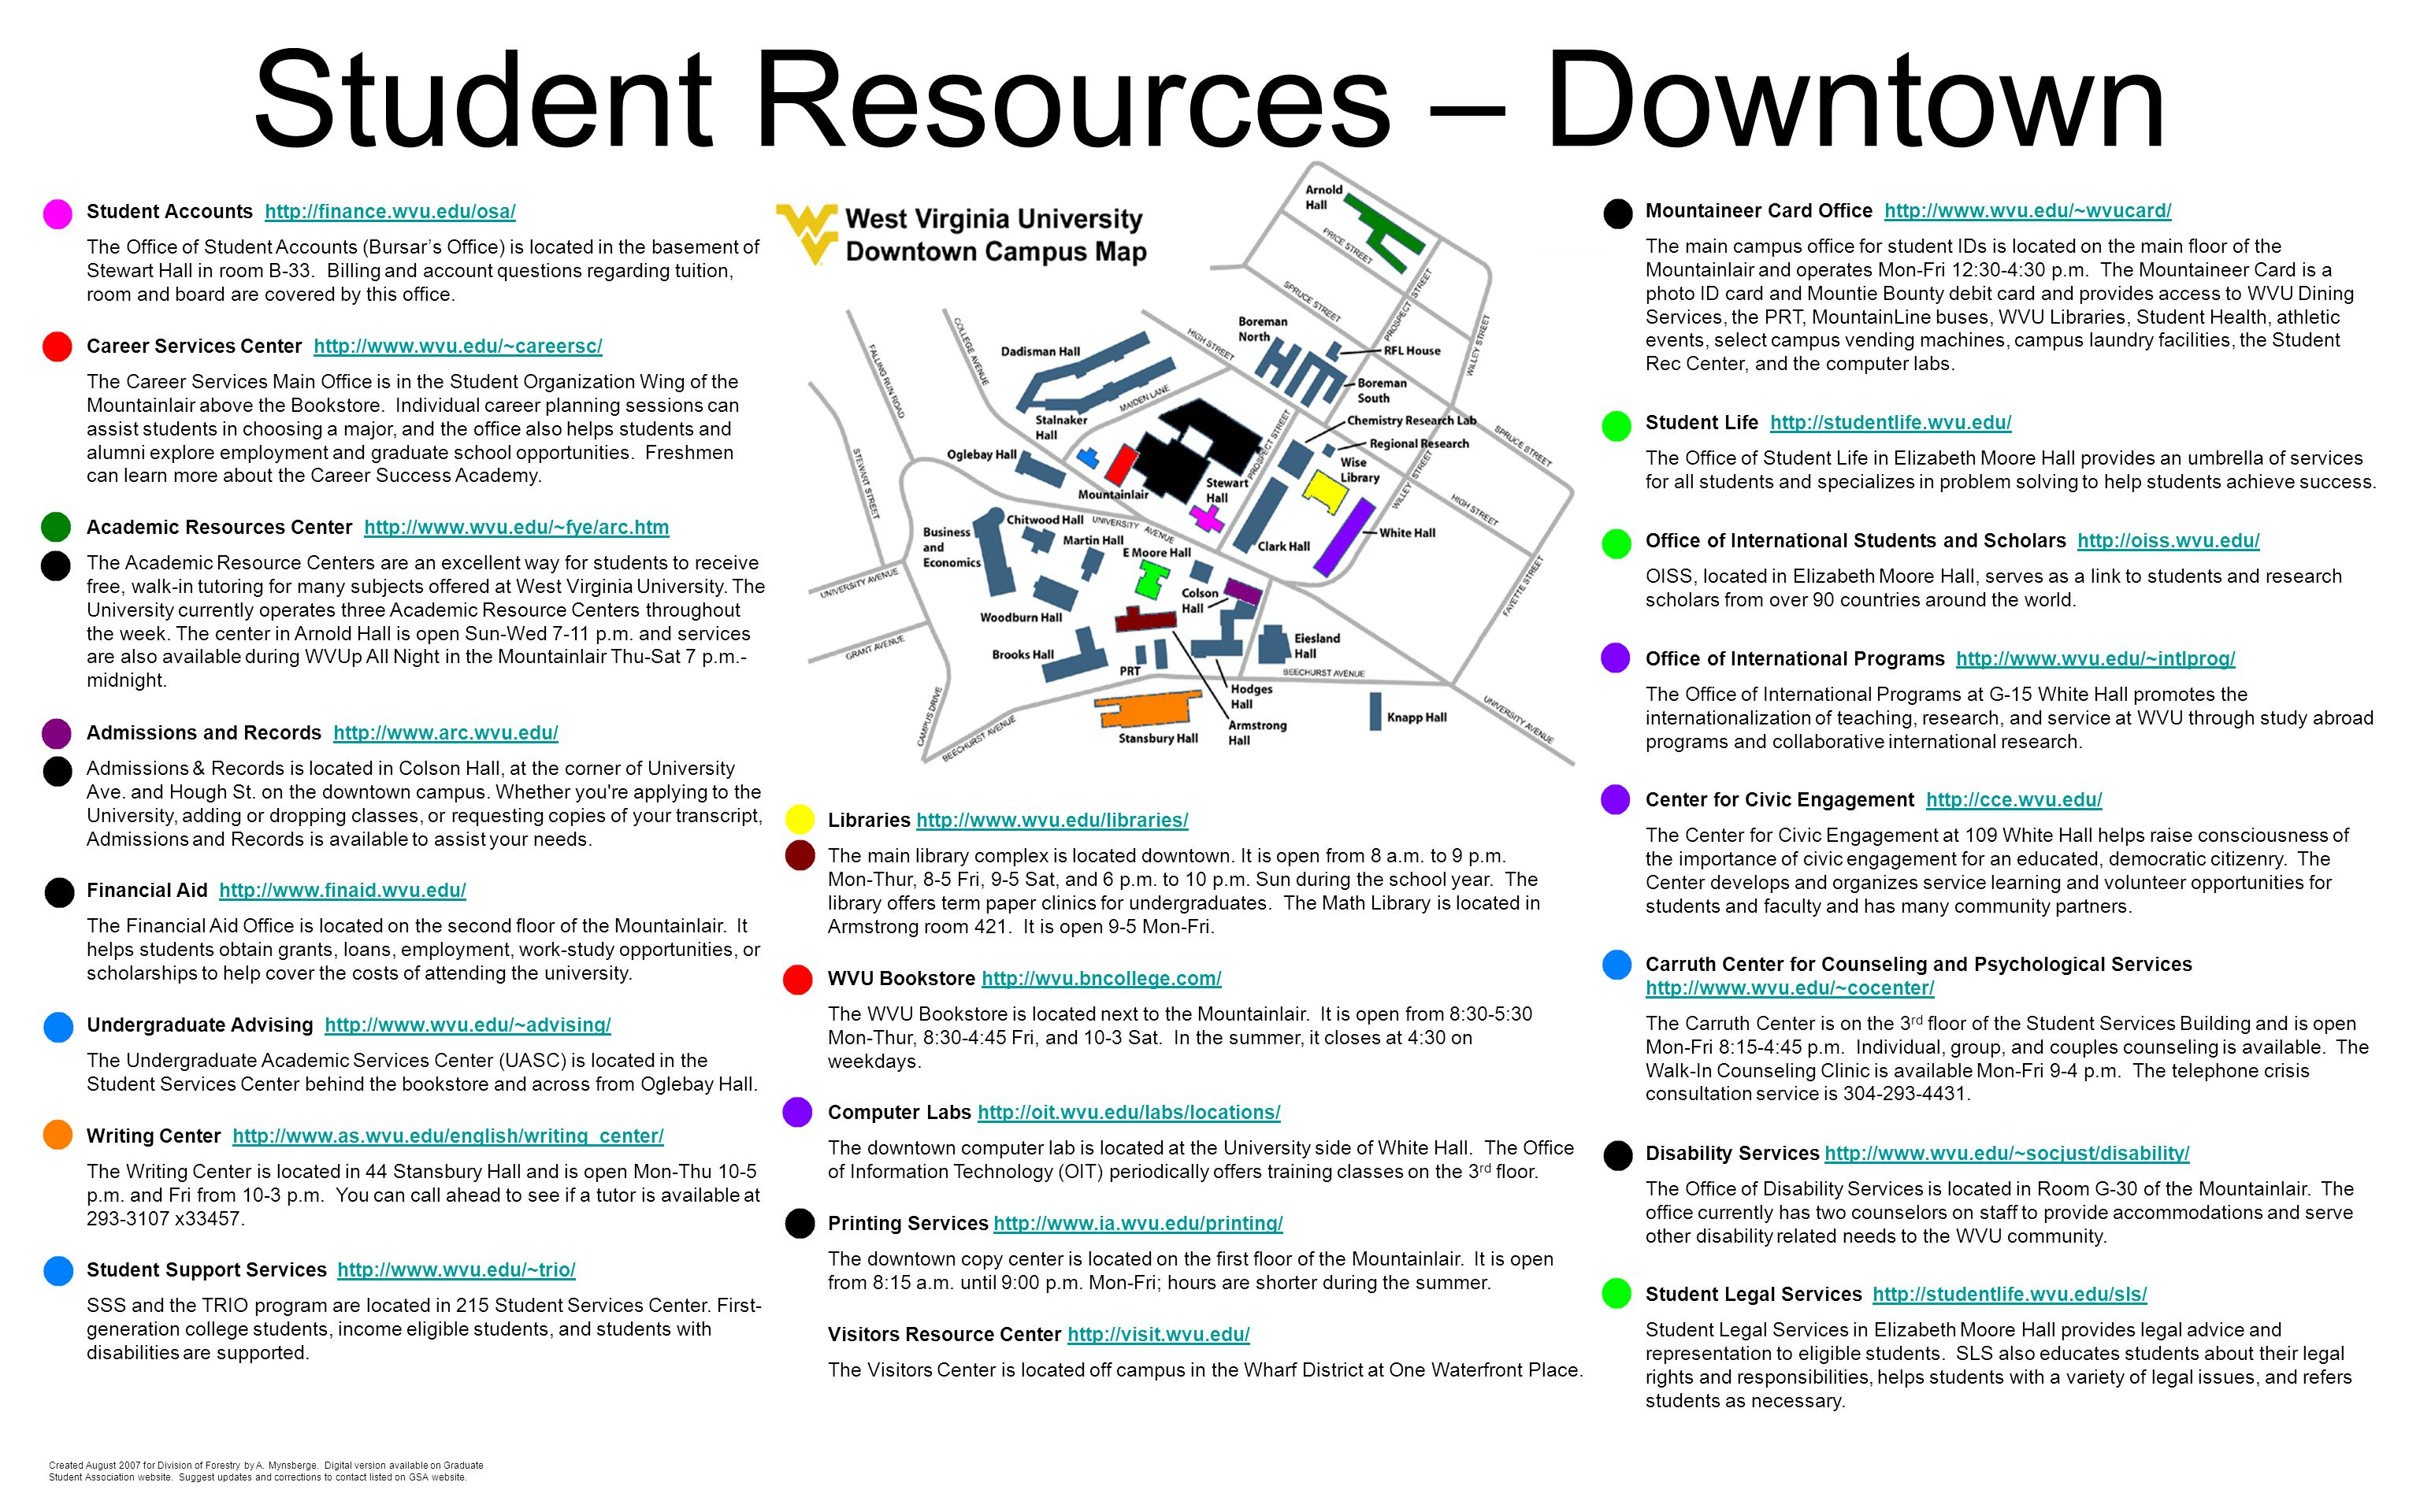 Student Resources – Downtown Visitors Resource Center http://visit.wvu.edu/http://visit.wvu.edu/ The Visitors Center is located off campus in the Wharf District at One Waterfront Place.